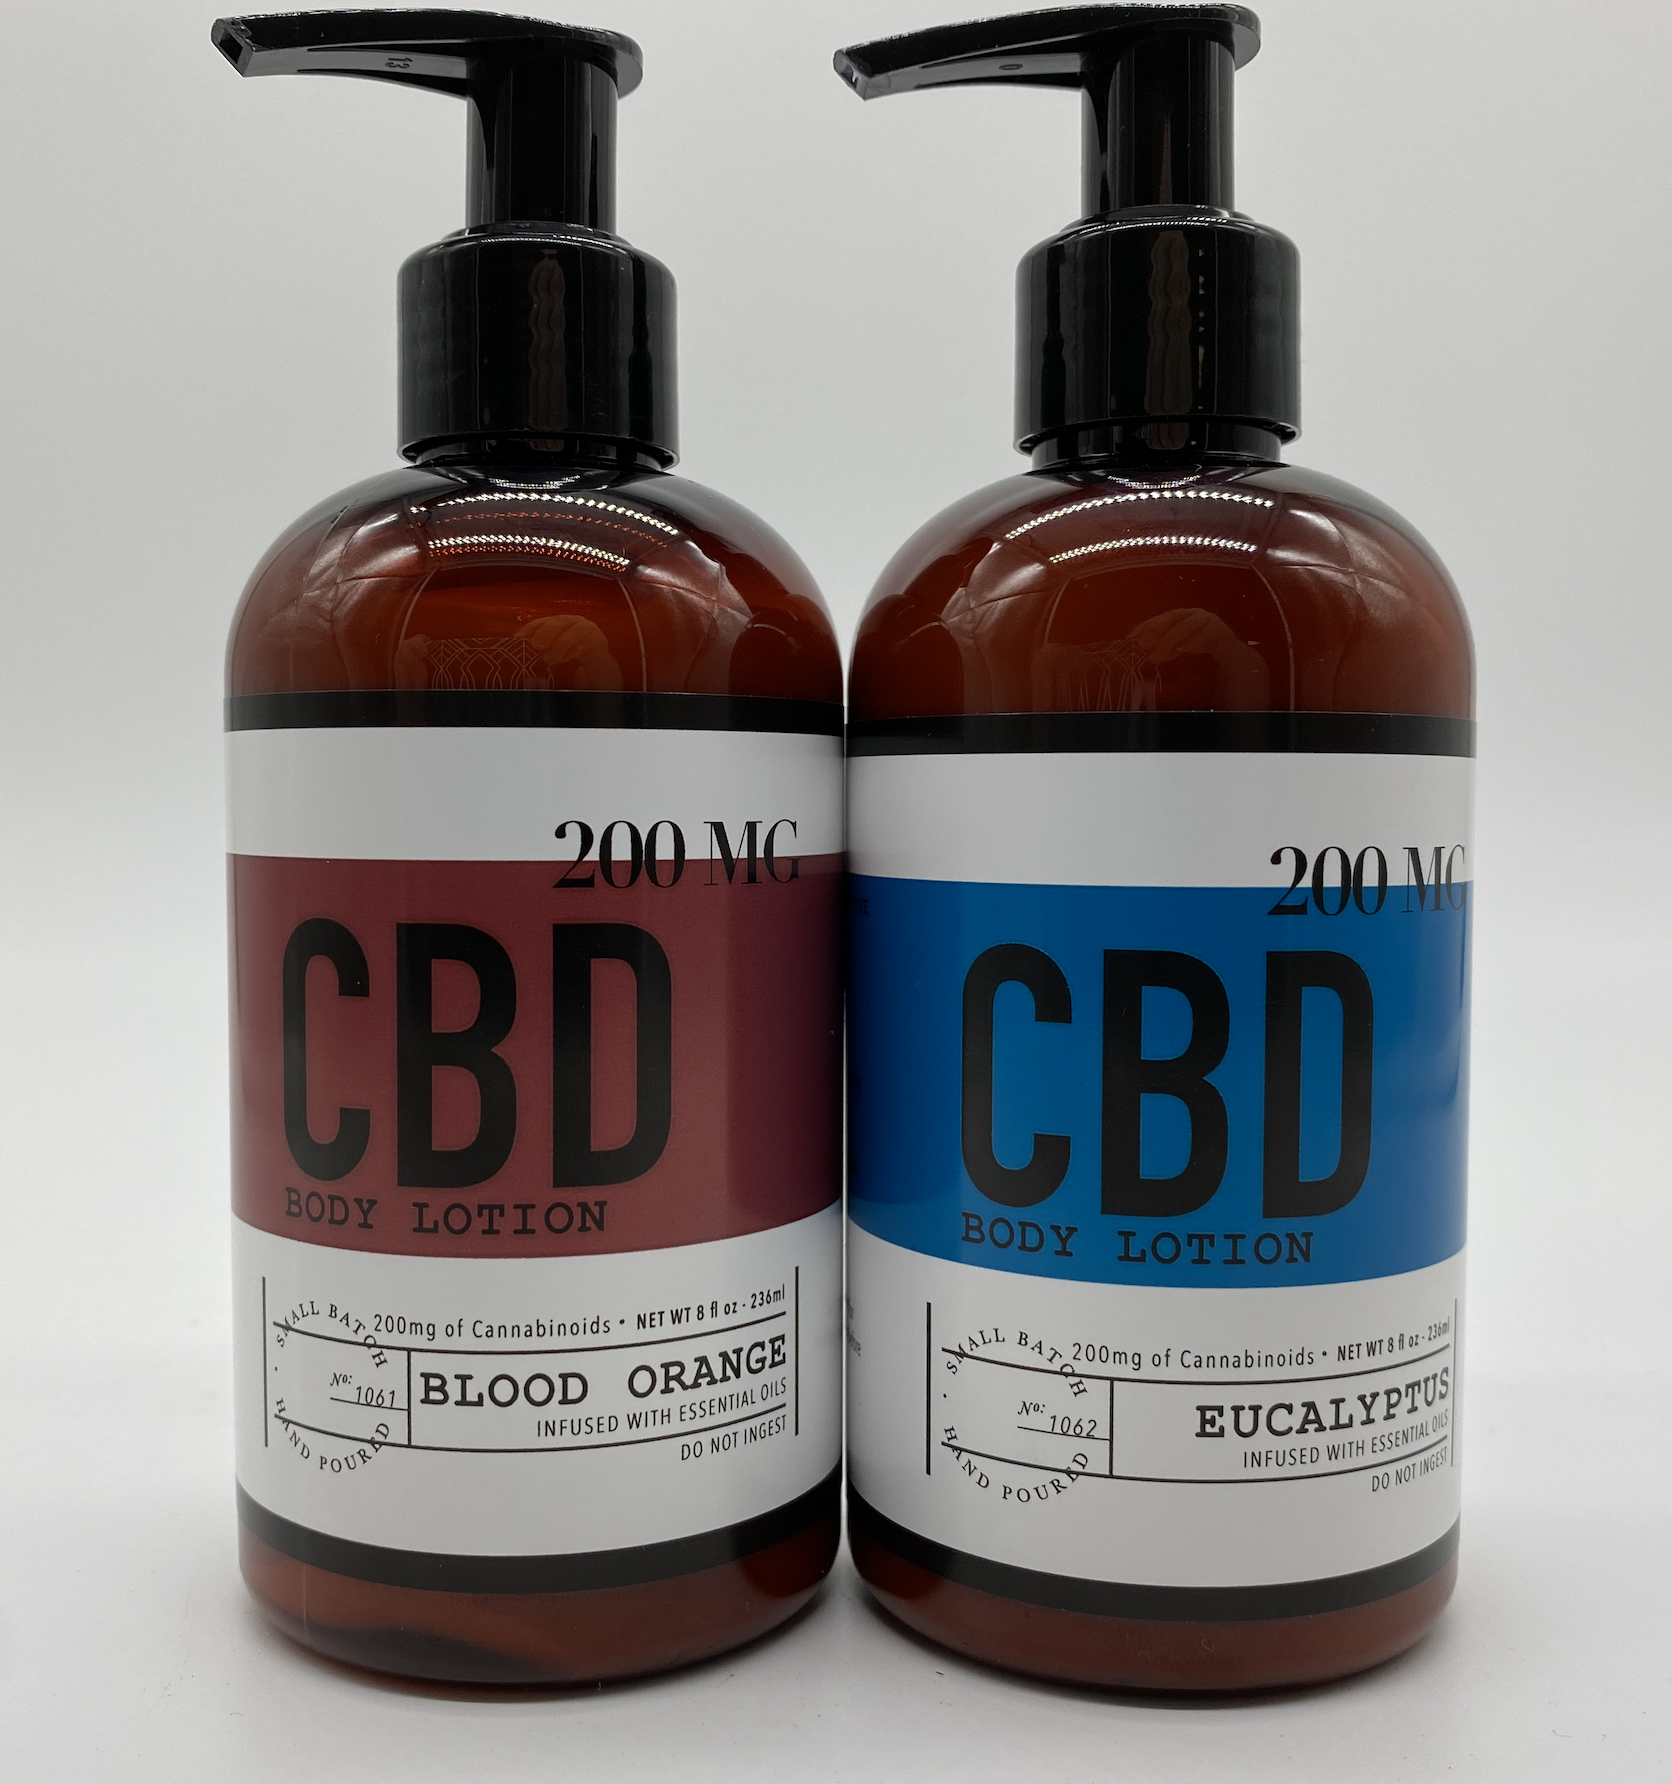 Best Quality CBD Topical Lotions Urban CBD Collective 404-443-3224